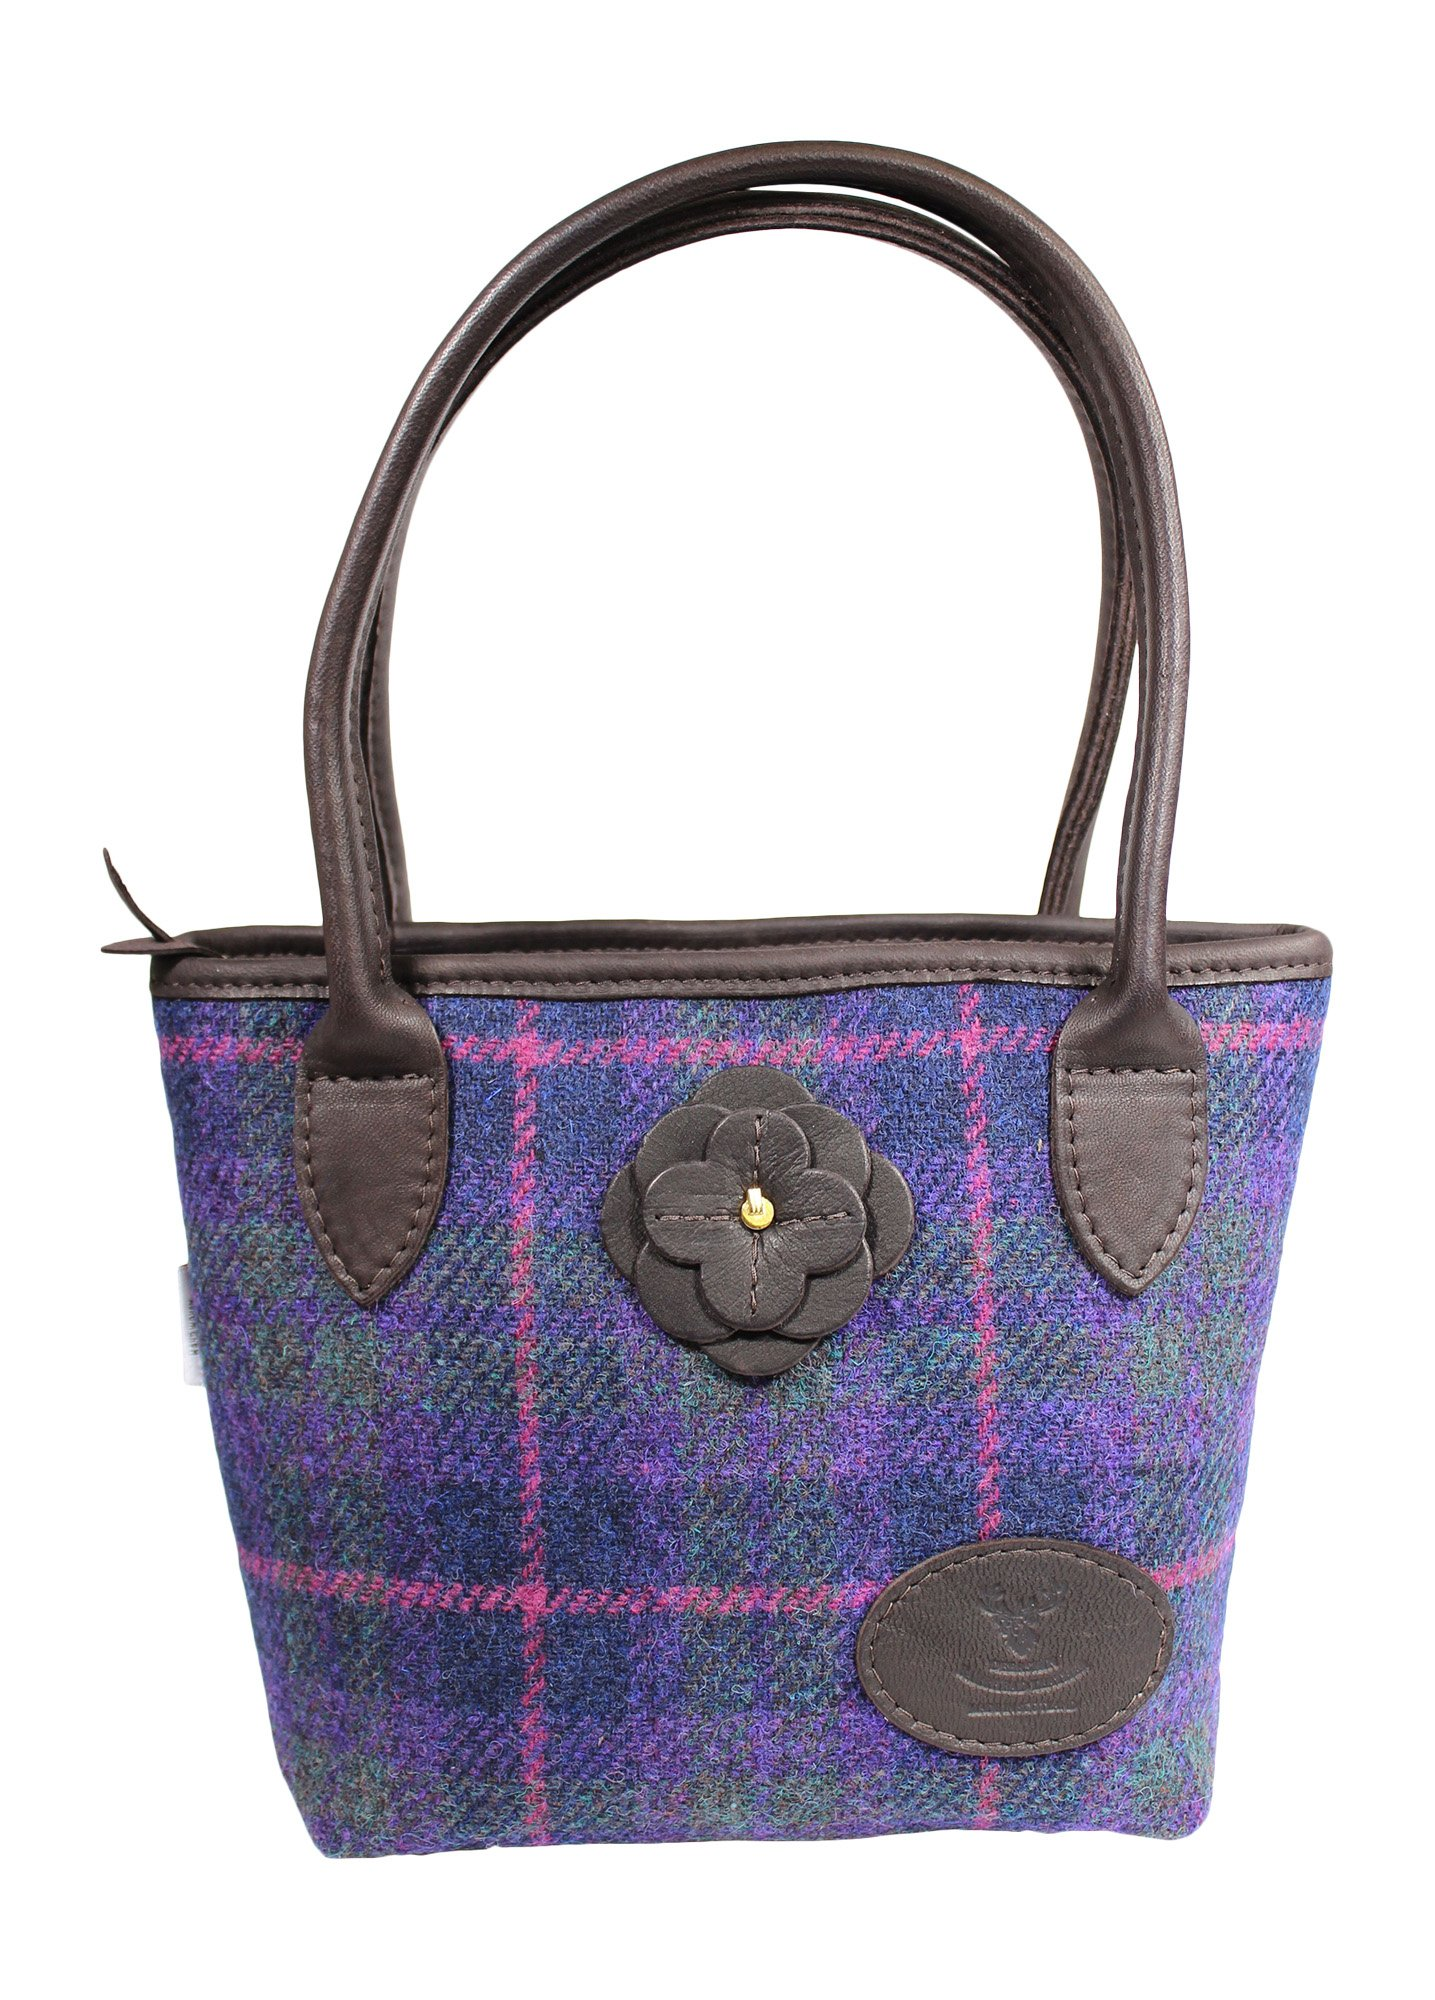 Wild Scottish Deerskin Designer Leather Authentic Purple Herringbone Harris Tweed Daisy Tote Bag